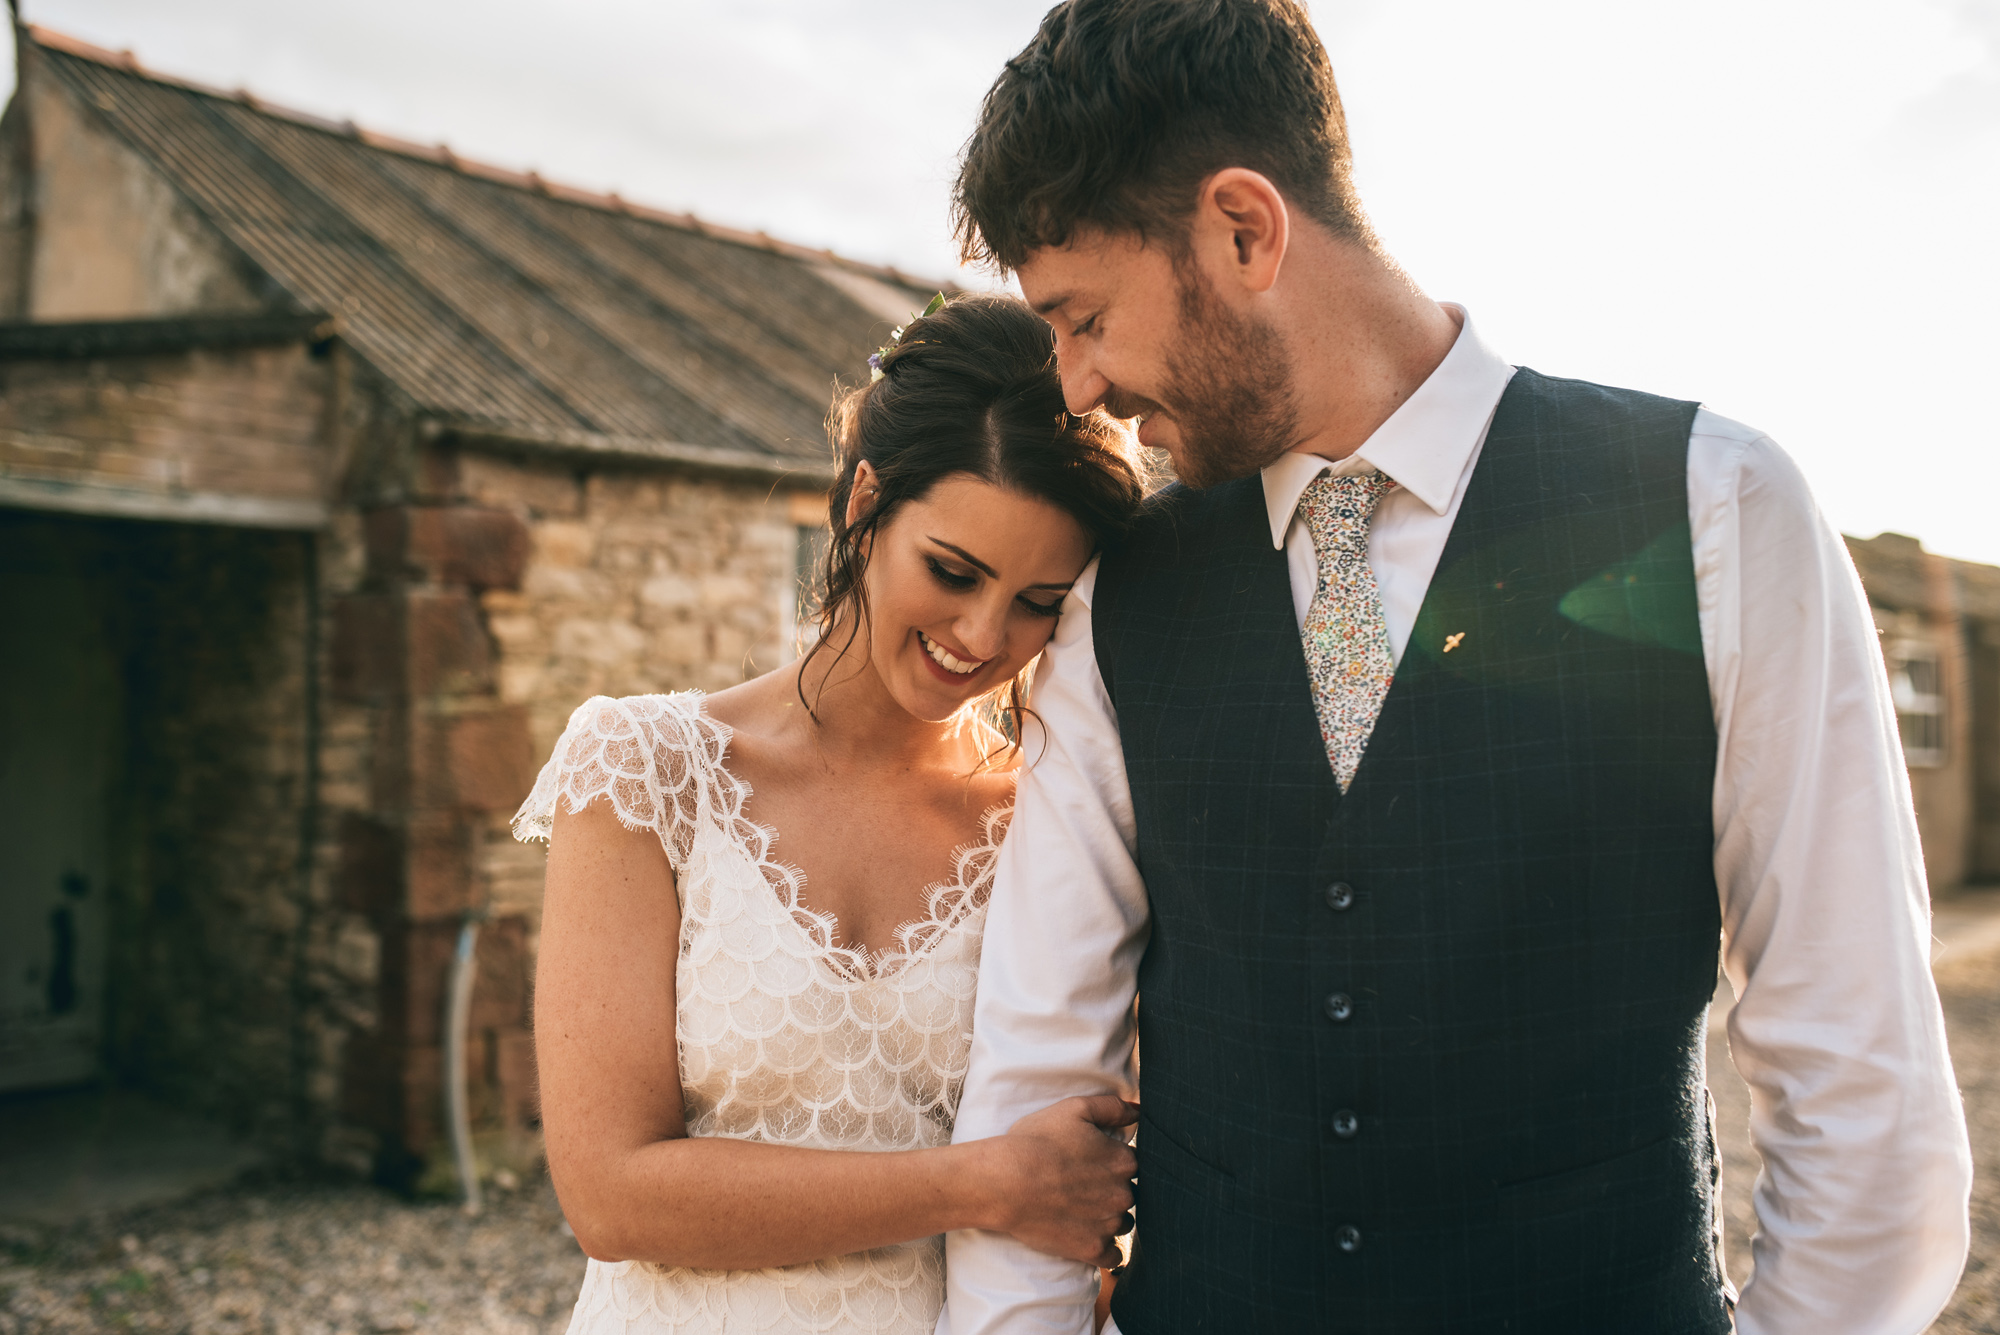 Kate-Beaumont-Sheffield-Lucy-Bohemian-Lace-Dress-Barn-Wedding-Cumbria-47.jpg